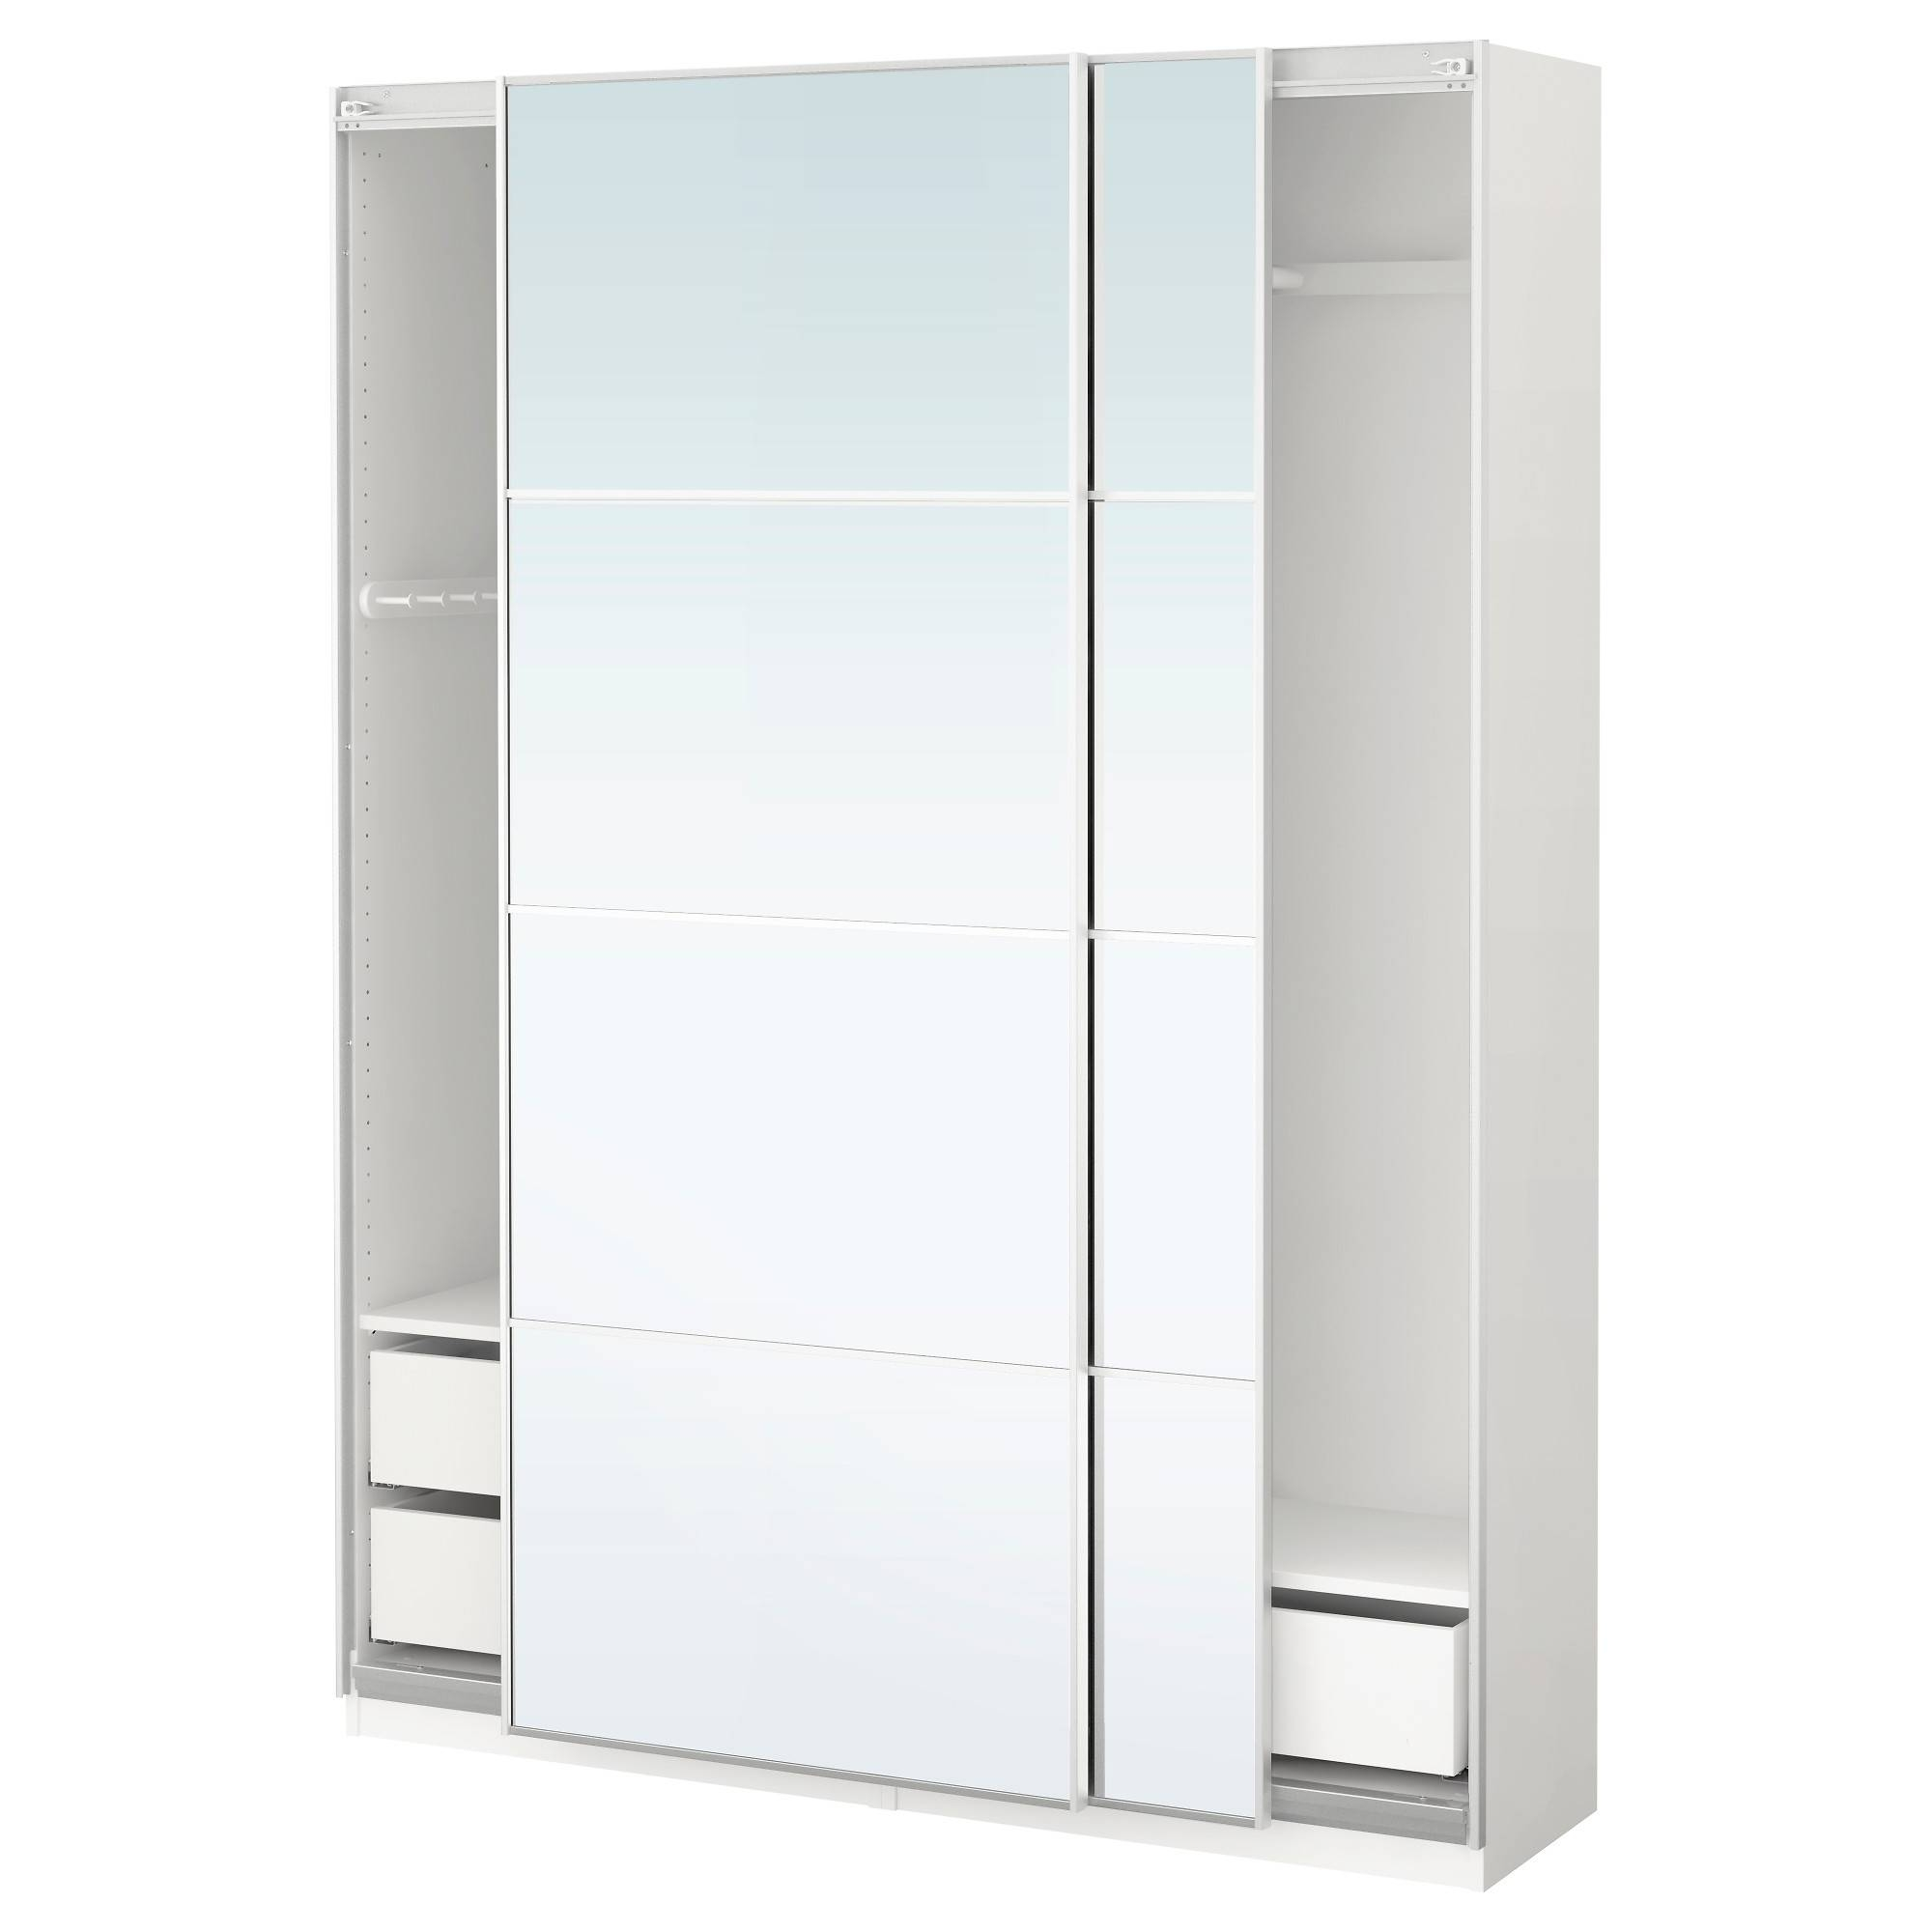 Pax Wardrobes | Design Your Own Wardrobe At Ikea intended for White Gloss Sliding Wardrobes (Image 12 of 15)